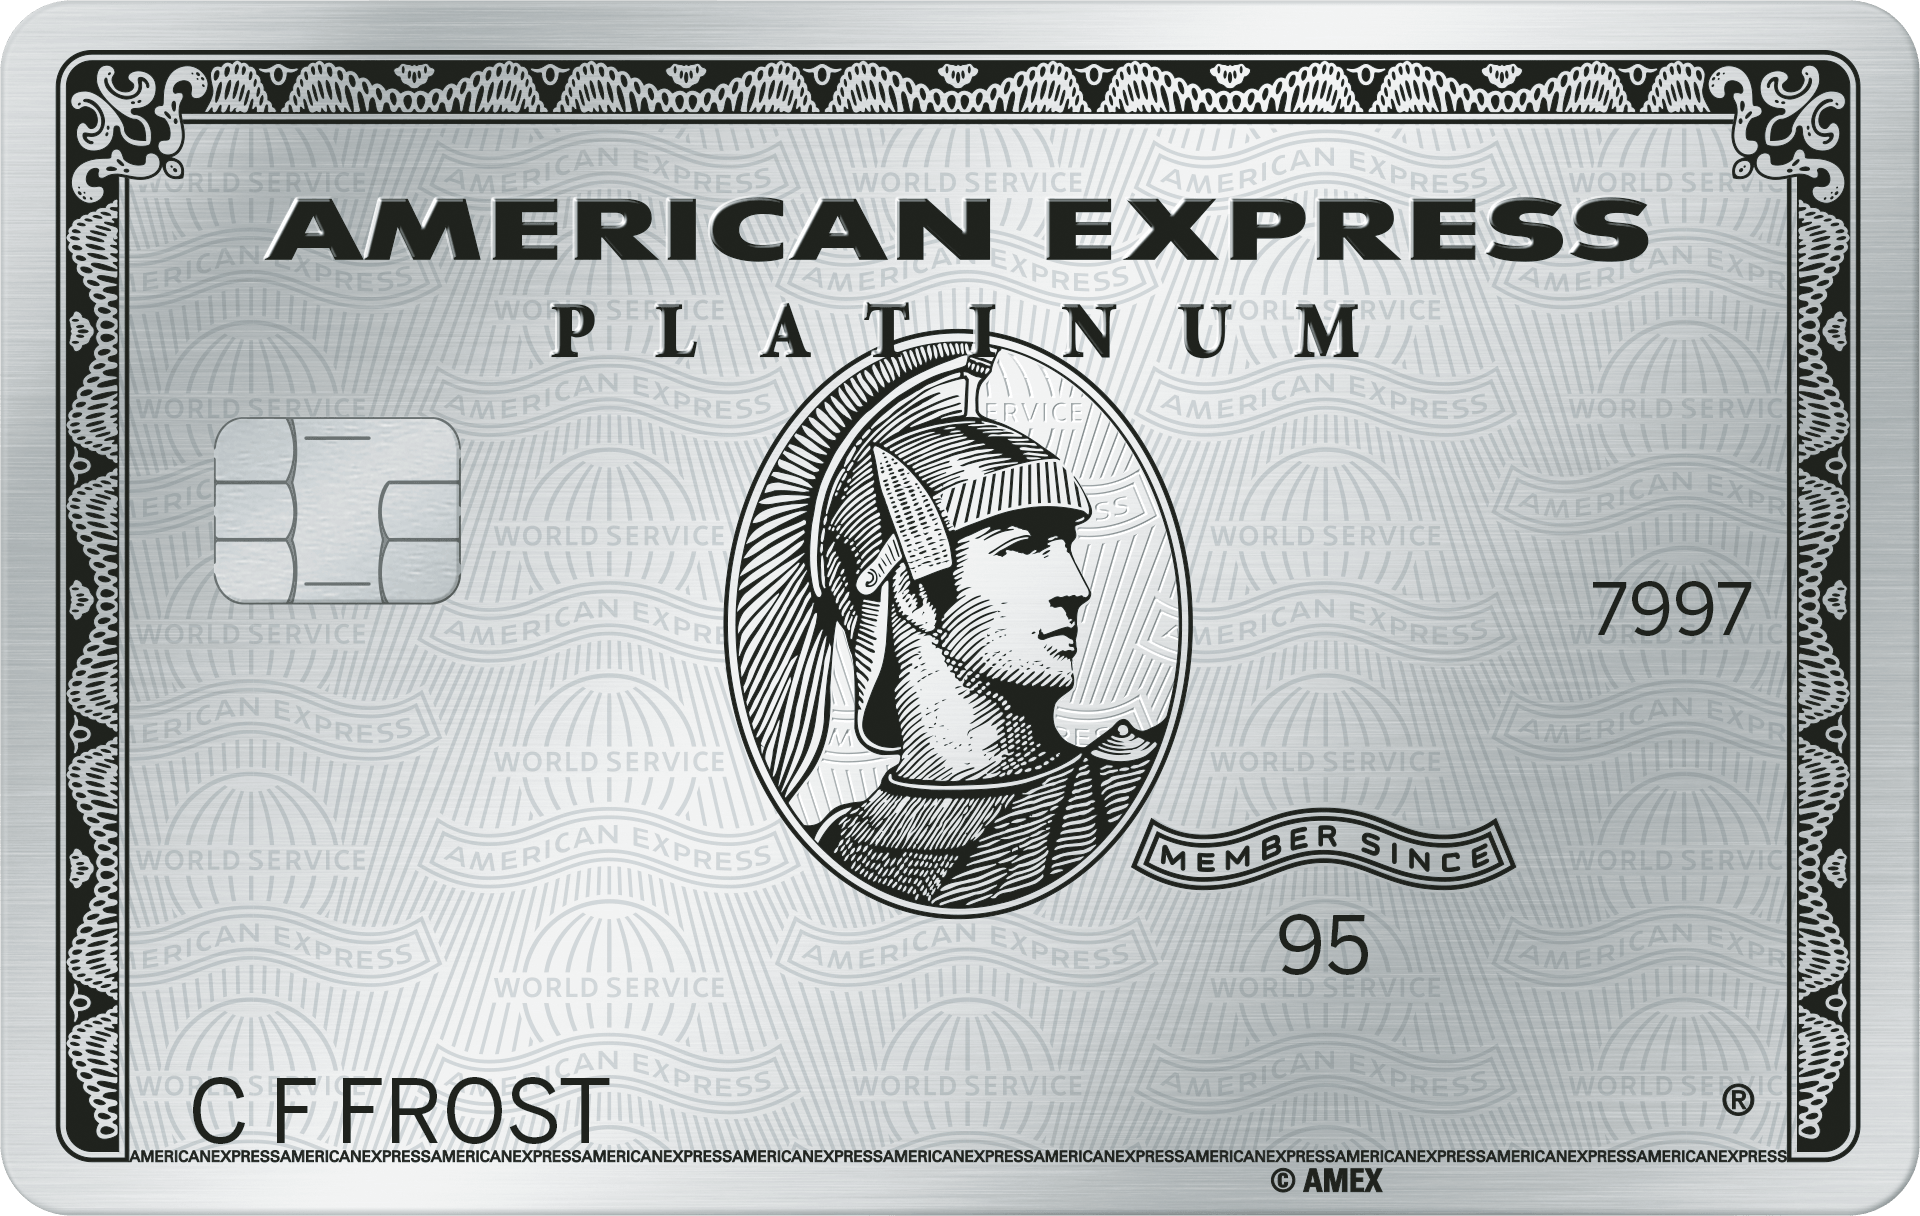 American Express Card Services >> American Express Announce New Benefits For The Platinum Card Elite